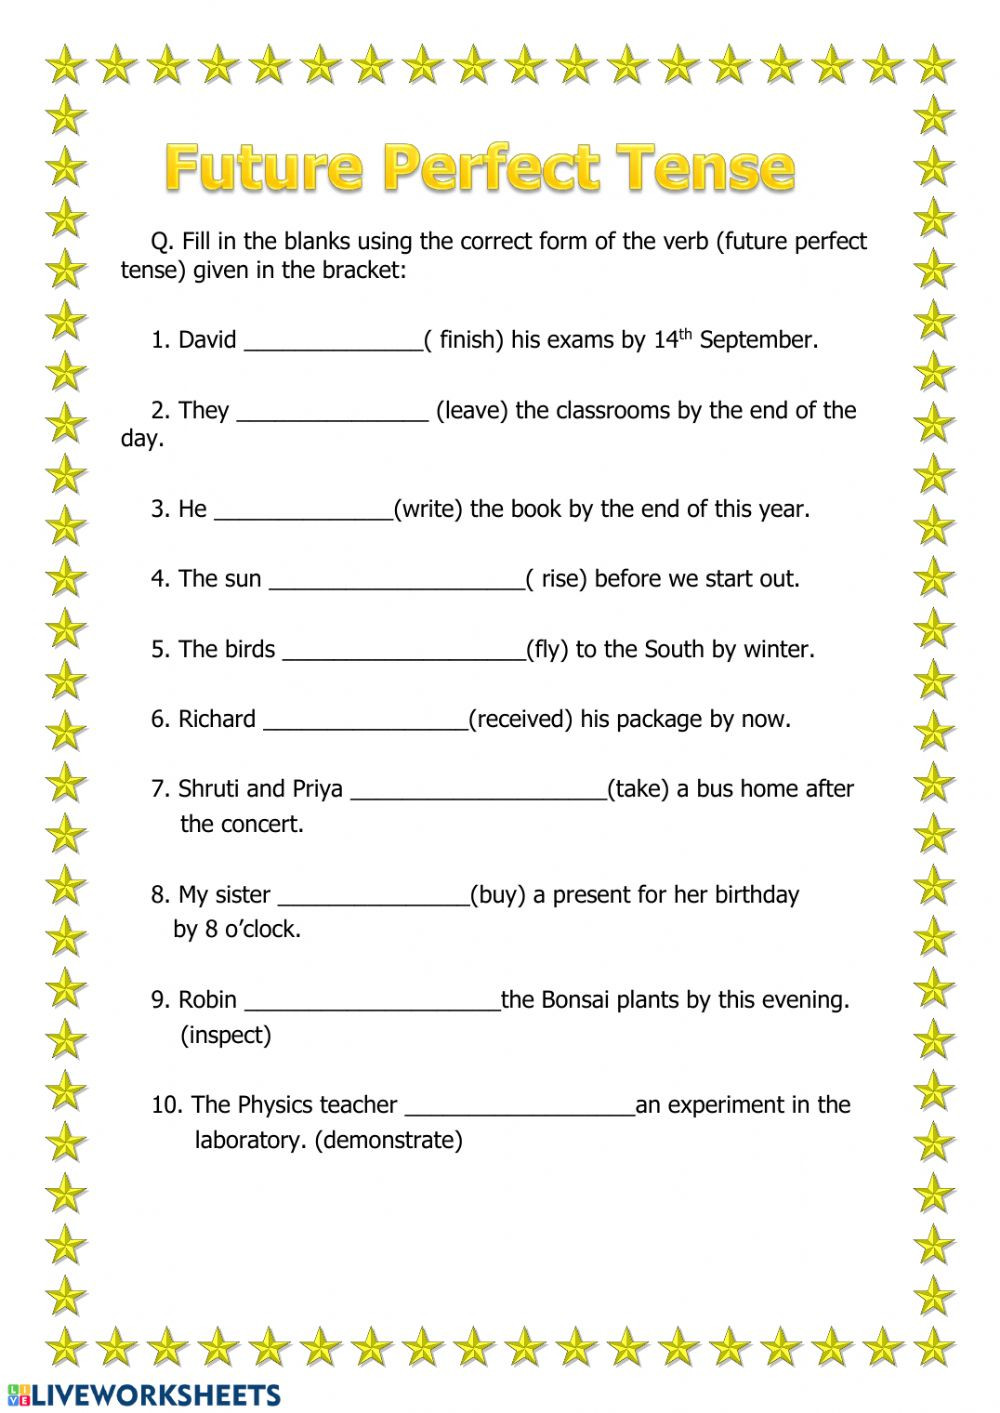 Tenses Worksheets for Grade 6 Future Perfect Tense Interactive Worksheet